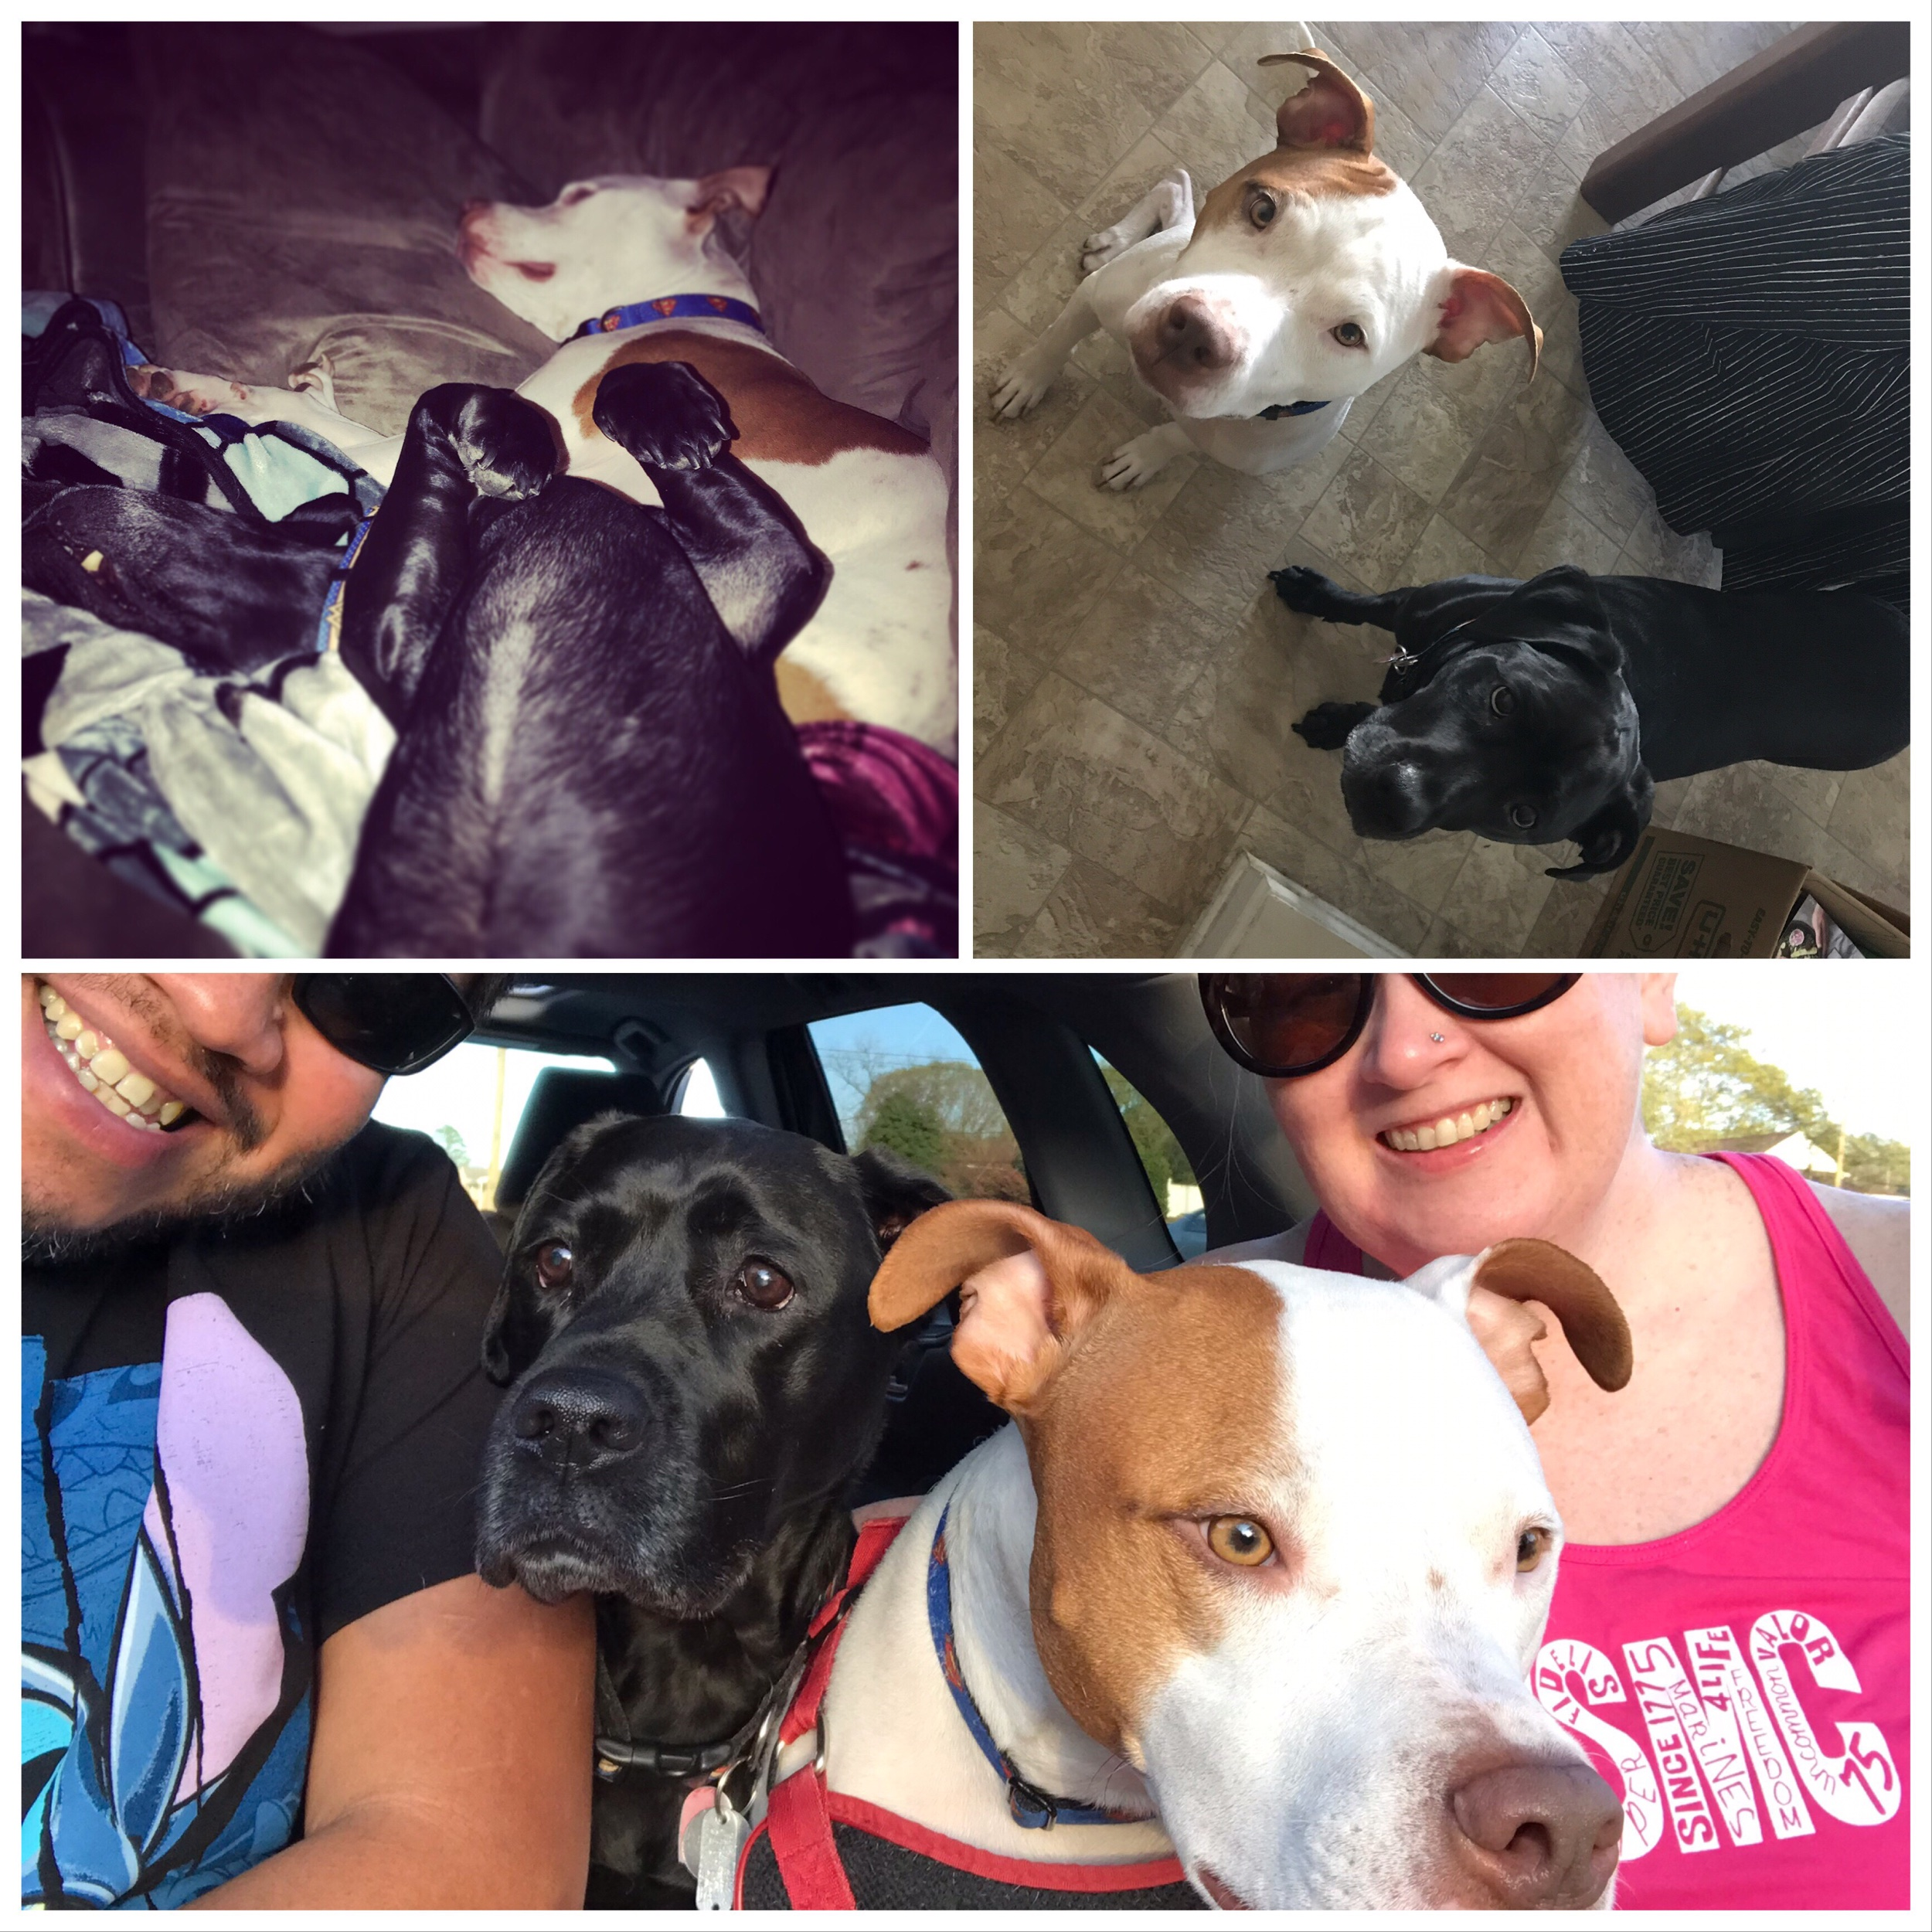 Happy Son's and Daughter's Day to our Furkids! - Bella and Walker, you are our world. We are so blessed that you adopted us and trust us to take care of you and spoil you rotten.